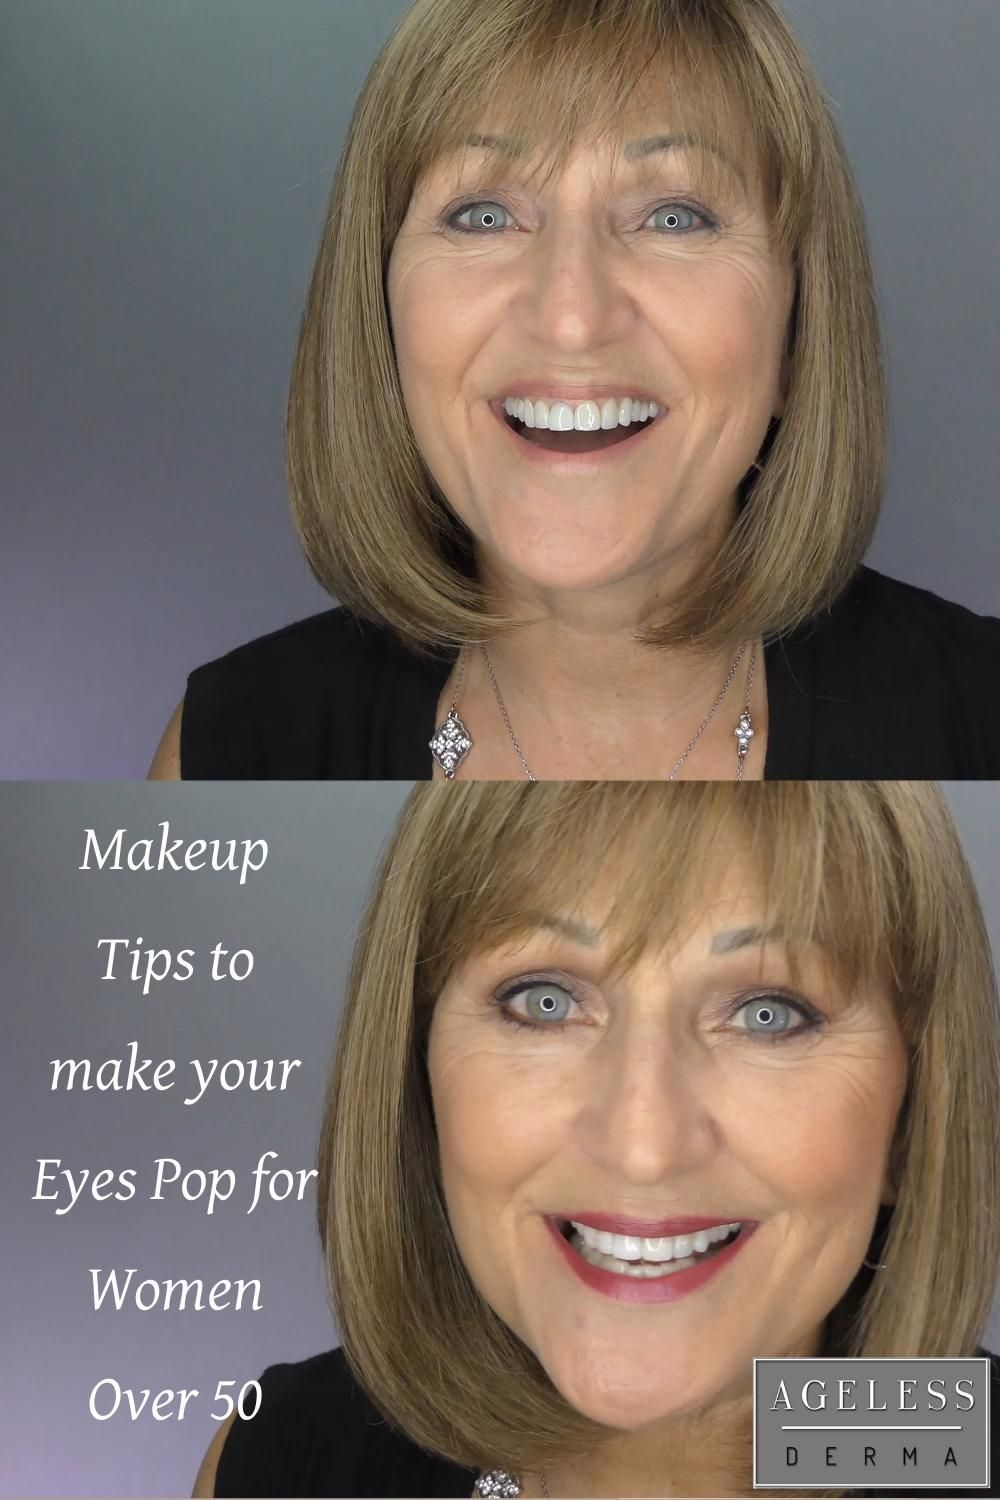 Makeup tips to make your eyes pop for women over 50 in